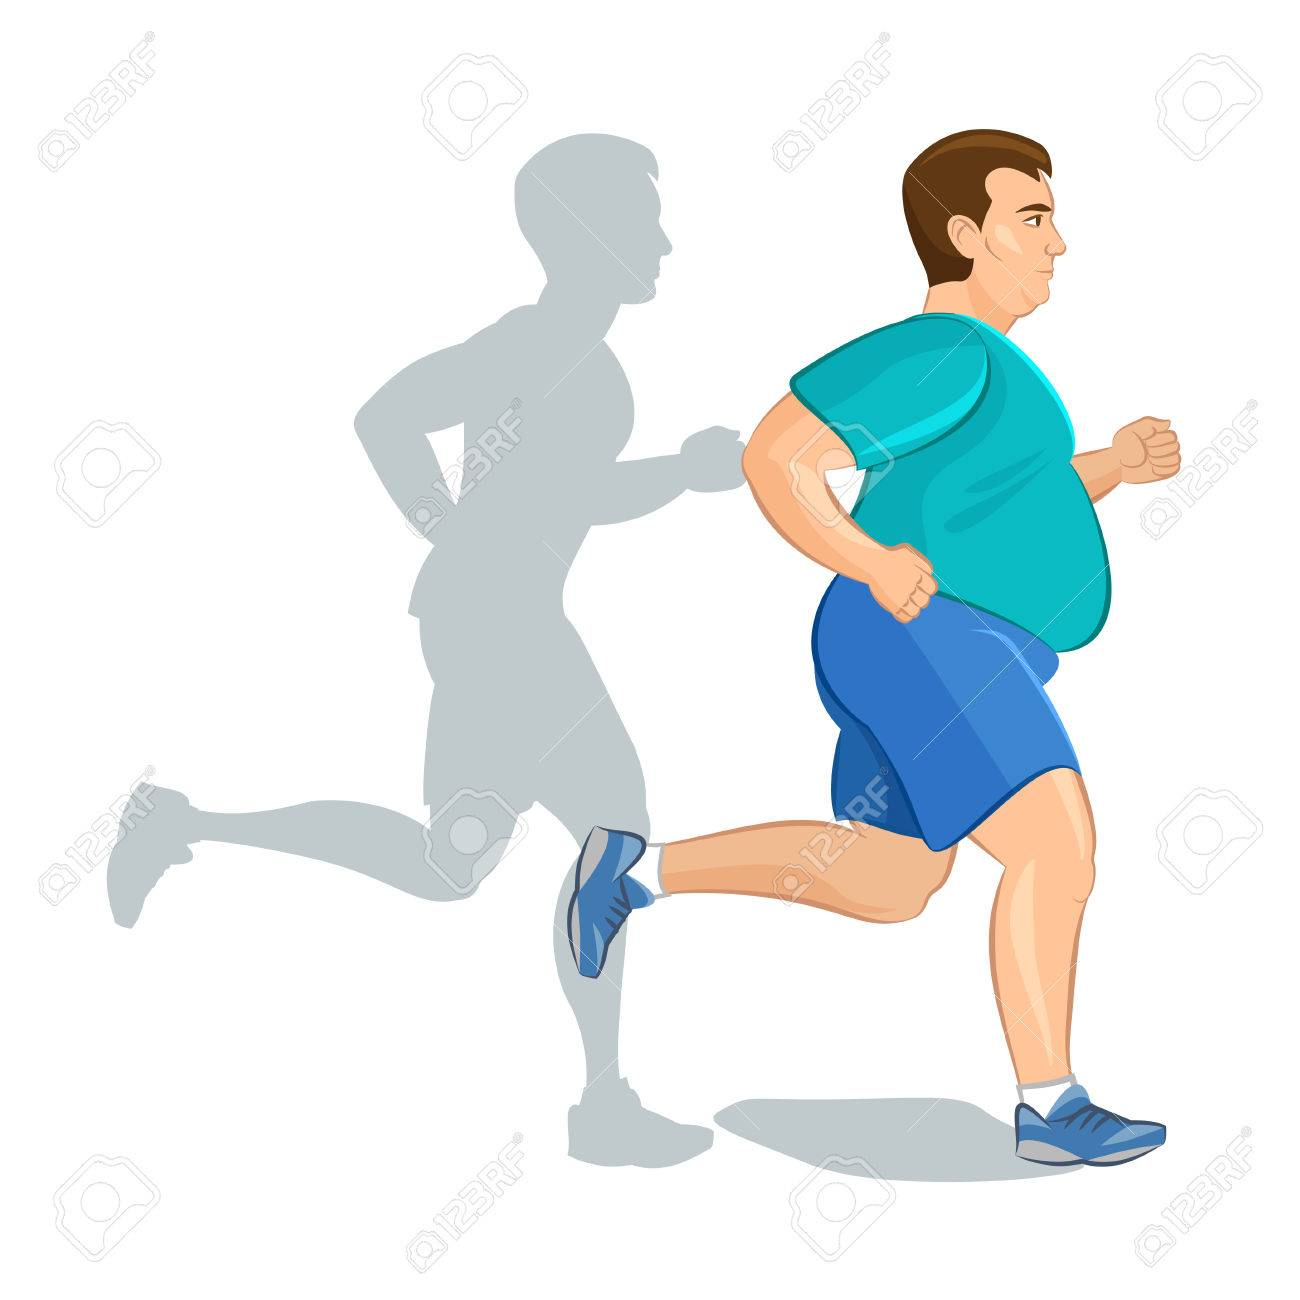 Illustration of a fat cartoon man jogging, weight loss concept, cardio training, health conscious concept running man, before and after - 46535901